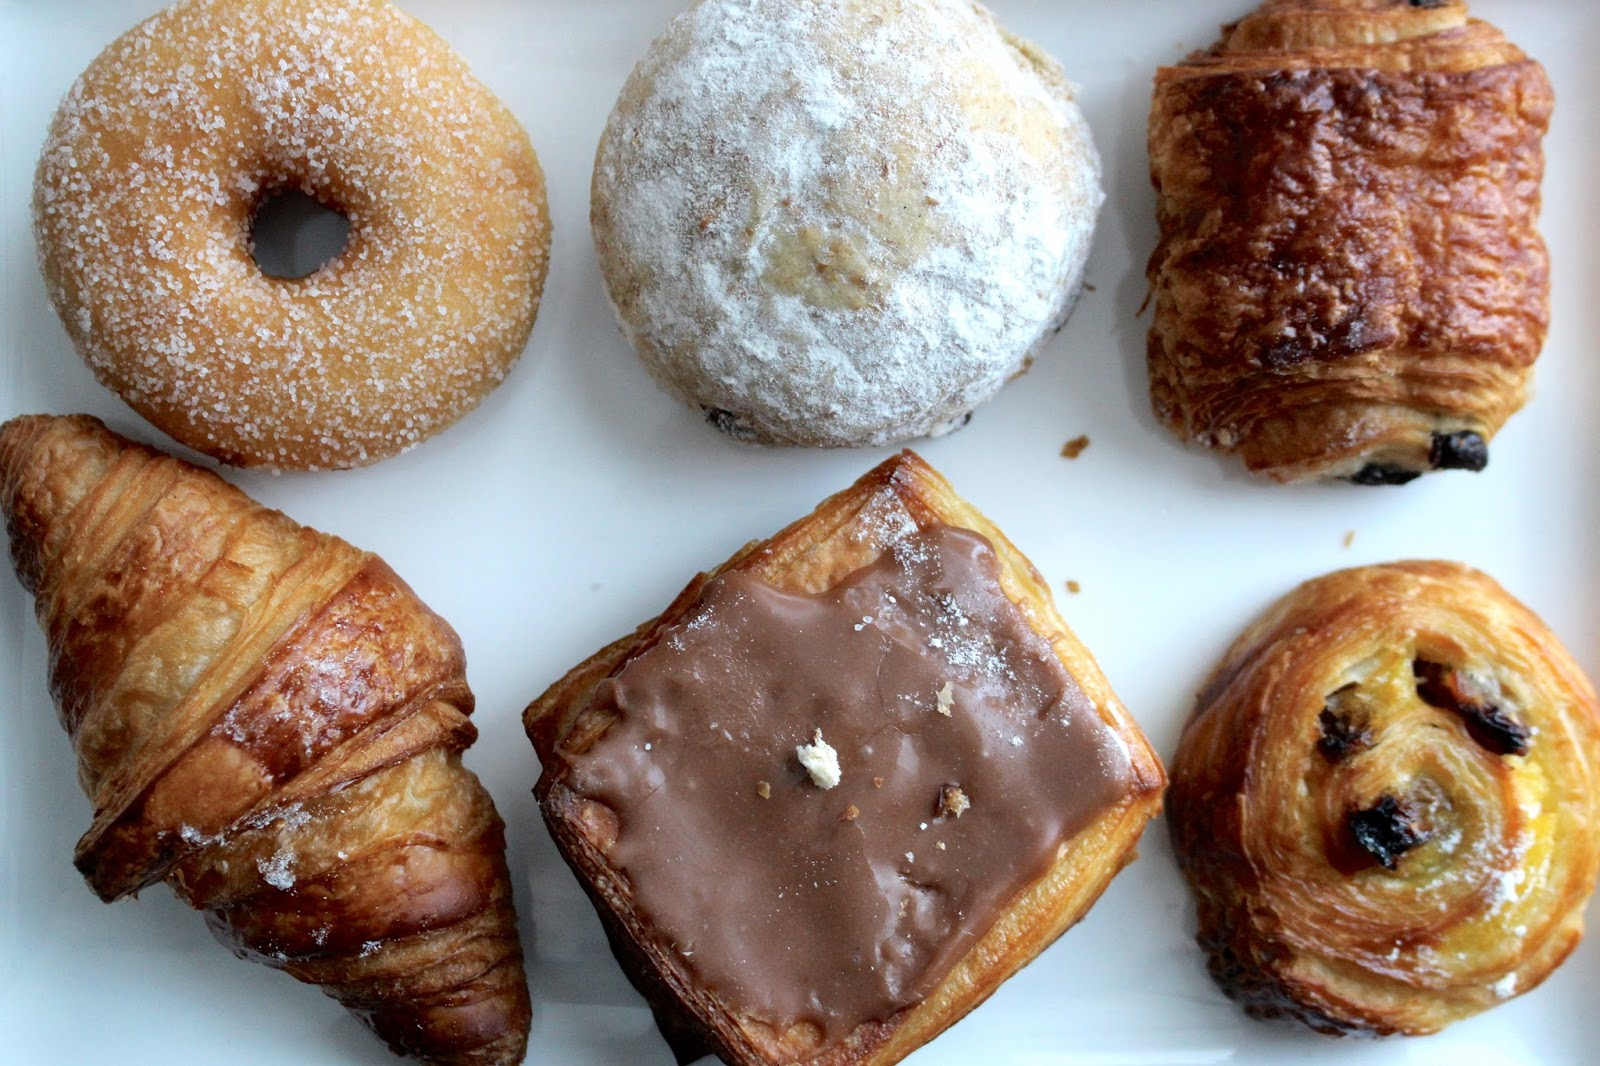 Selection of sweet pastries at Hotel Dukes' Palace